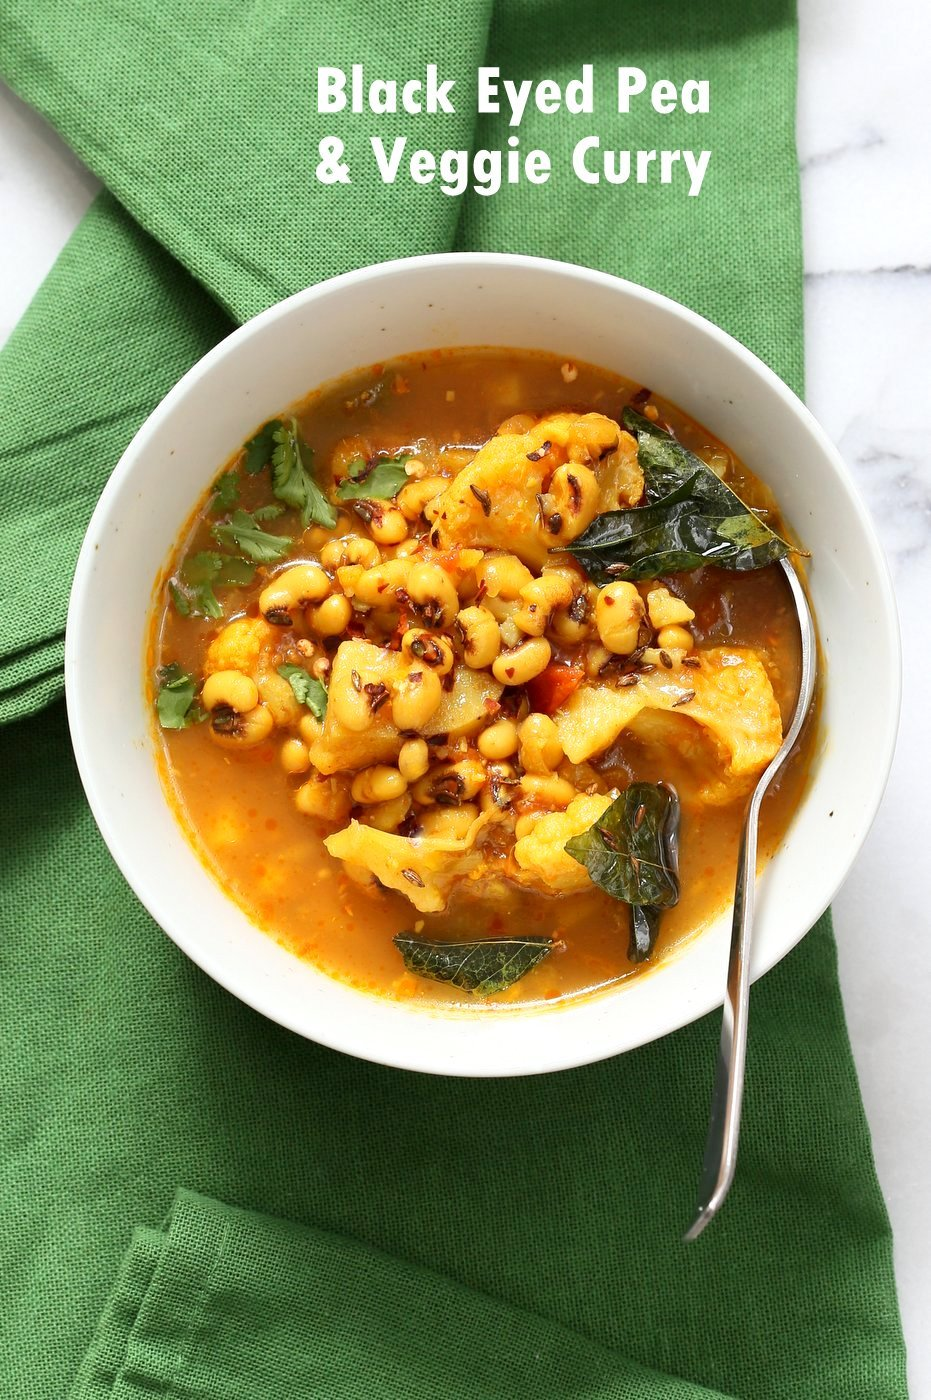 This coconutty Black Eyed Pea stew with Cauliflower and Potatoes is hearty and delicious. Instant Pot Black Eyed Pea Curry with vegetables. Saucepan Option. Gobi Aloo Lobia #vegan #glutenfree #soyfree #nutfree #recipe| VeganRicha.com